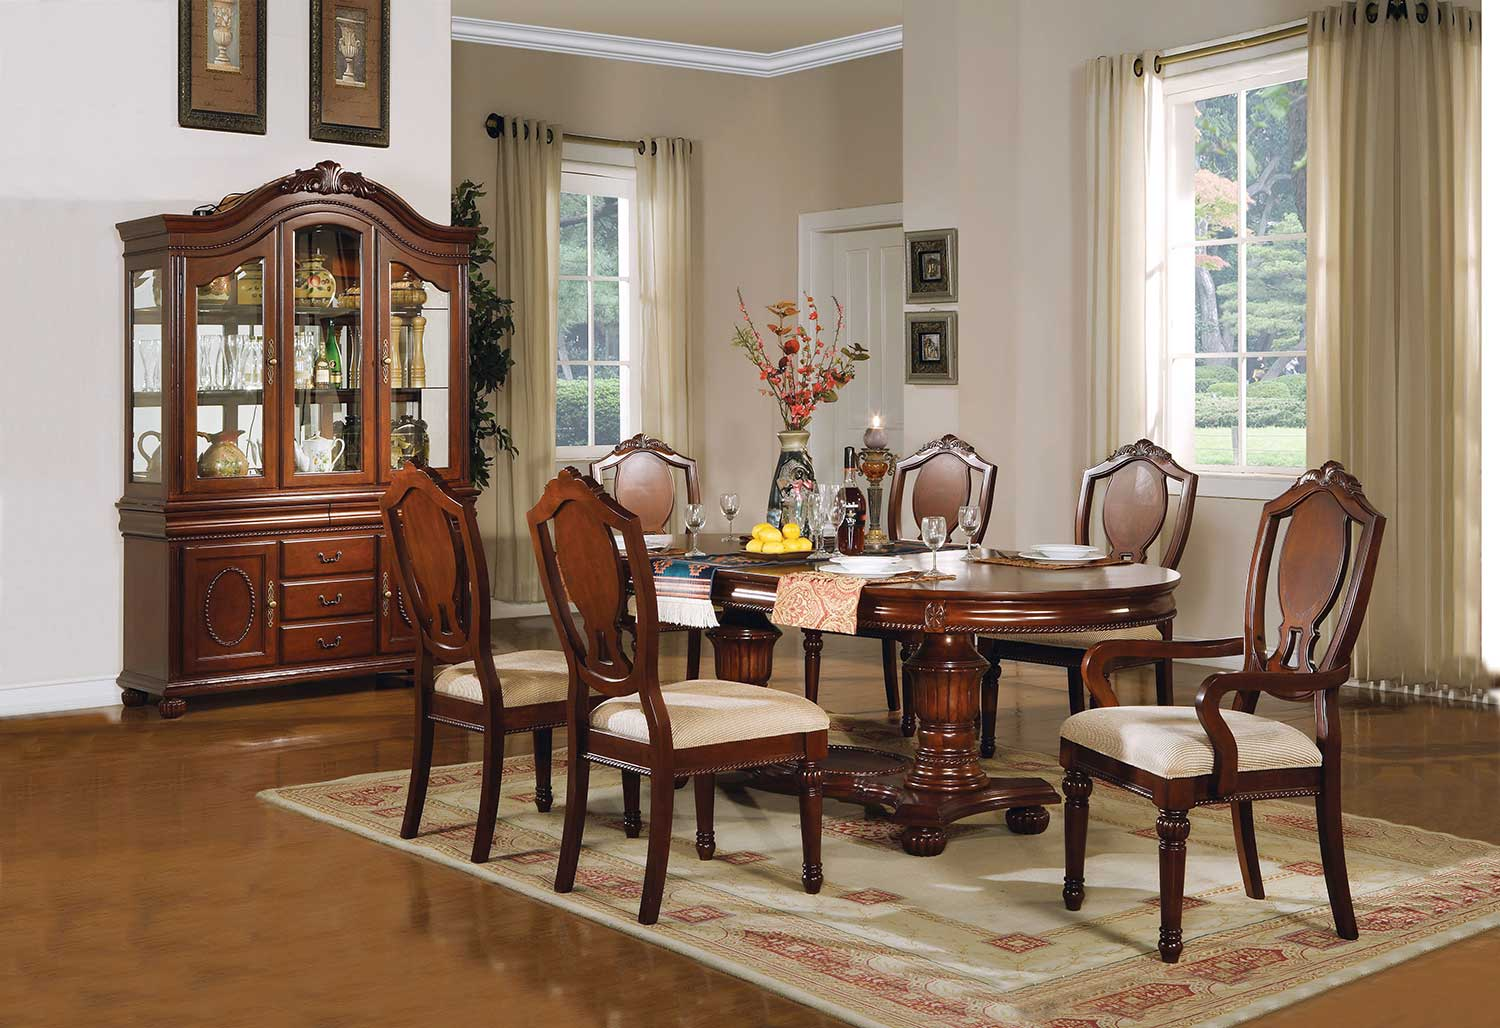 Acme Classique Dining Set with Double Pedestal - Cherry